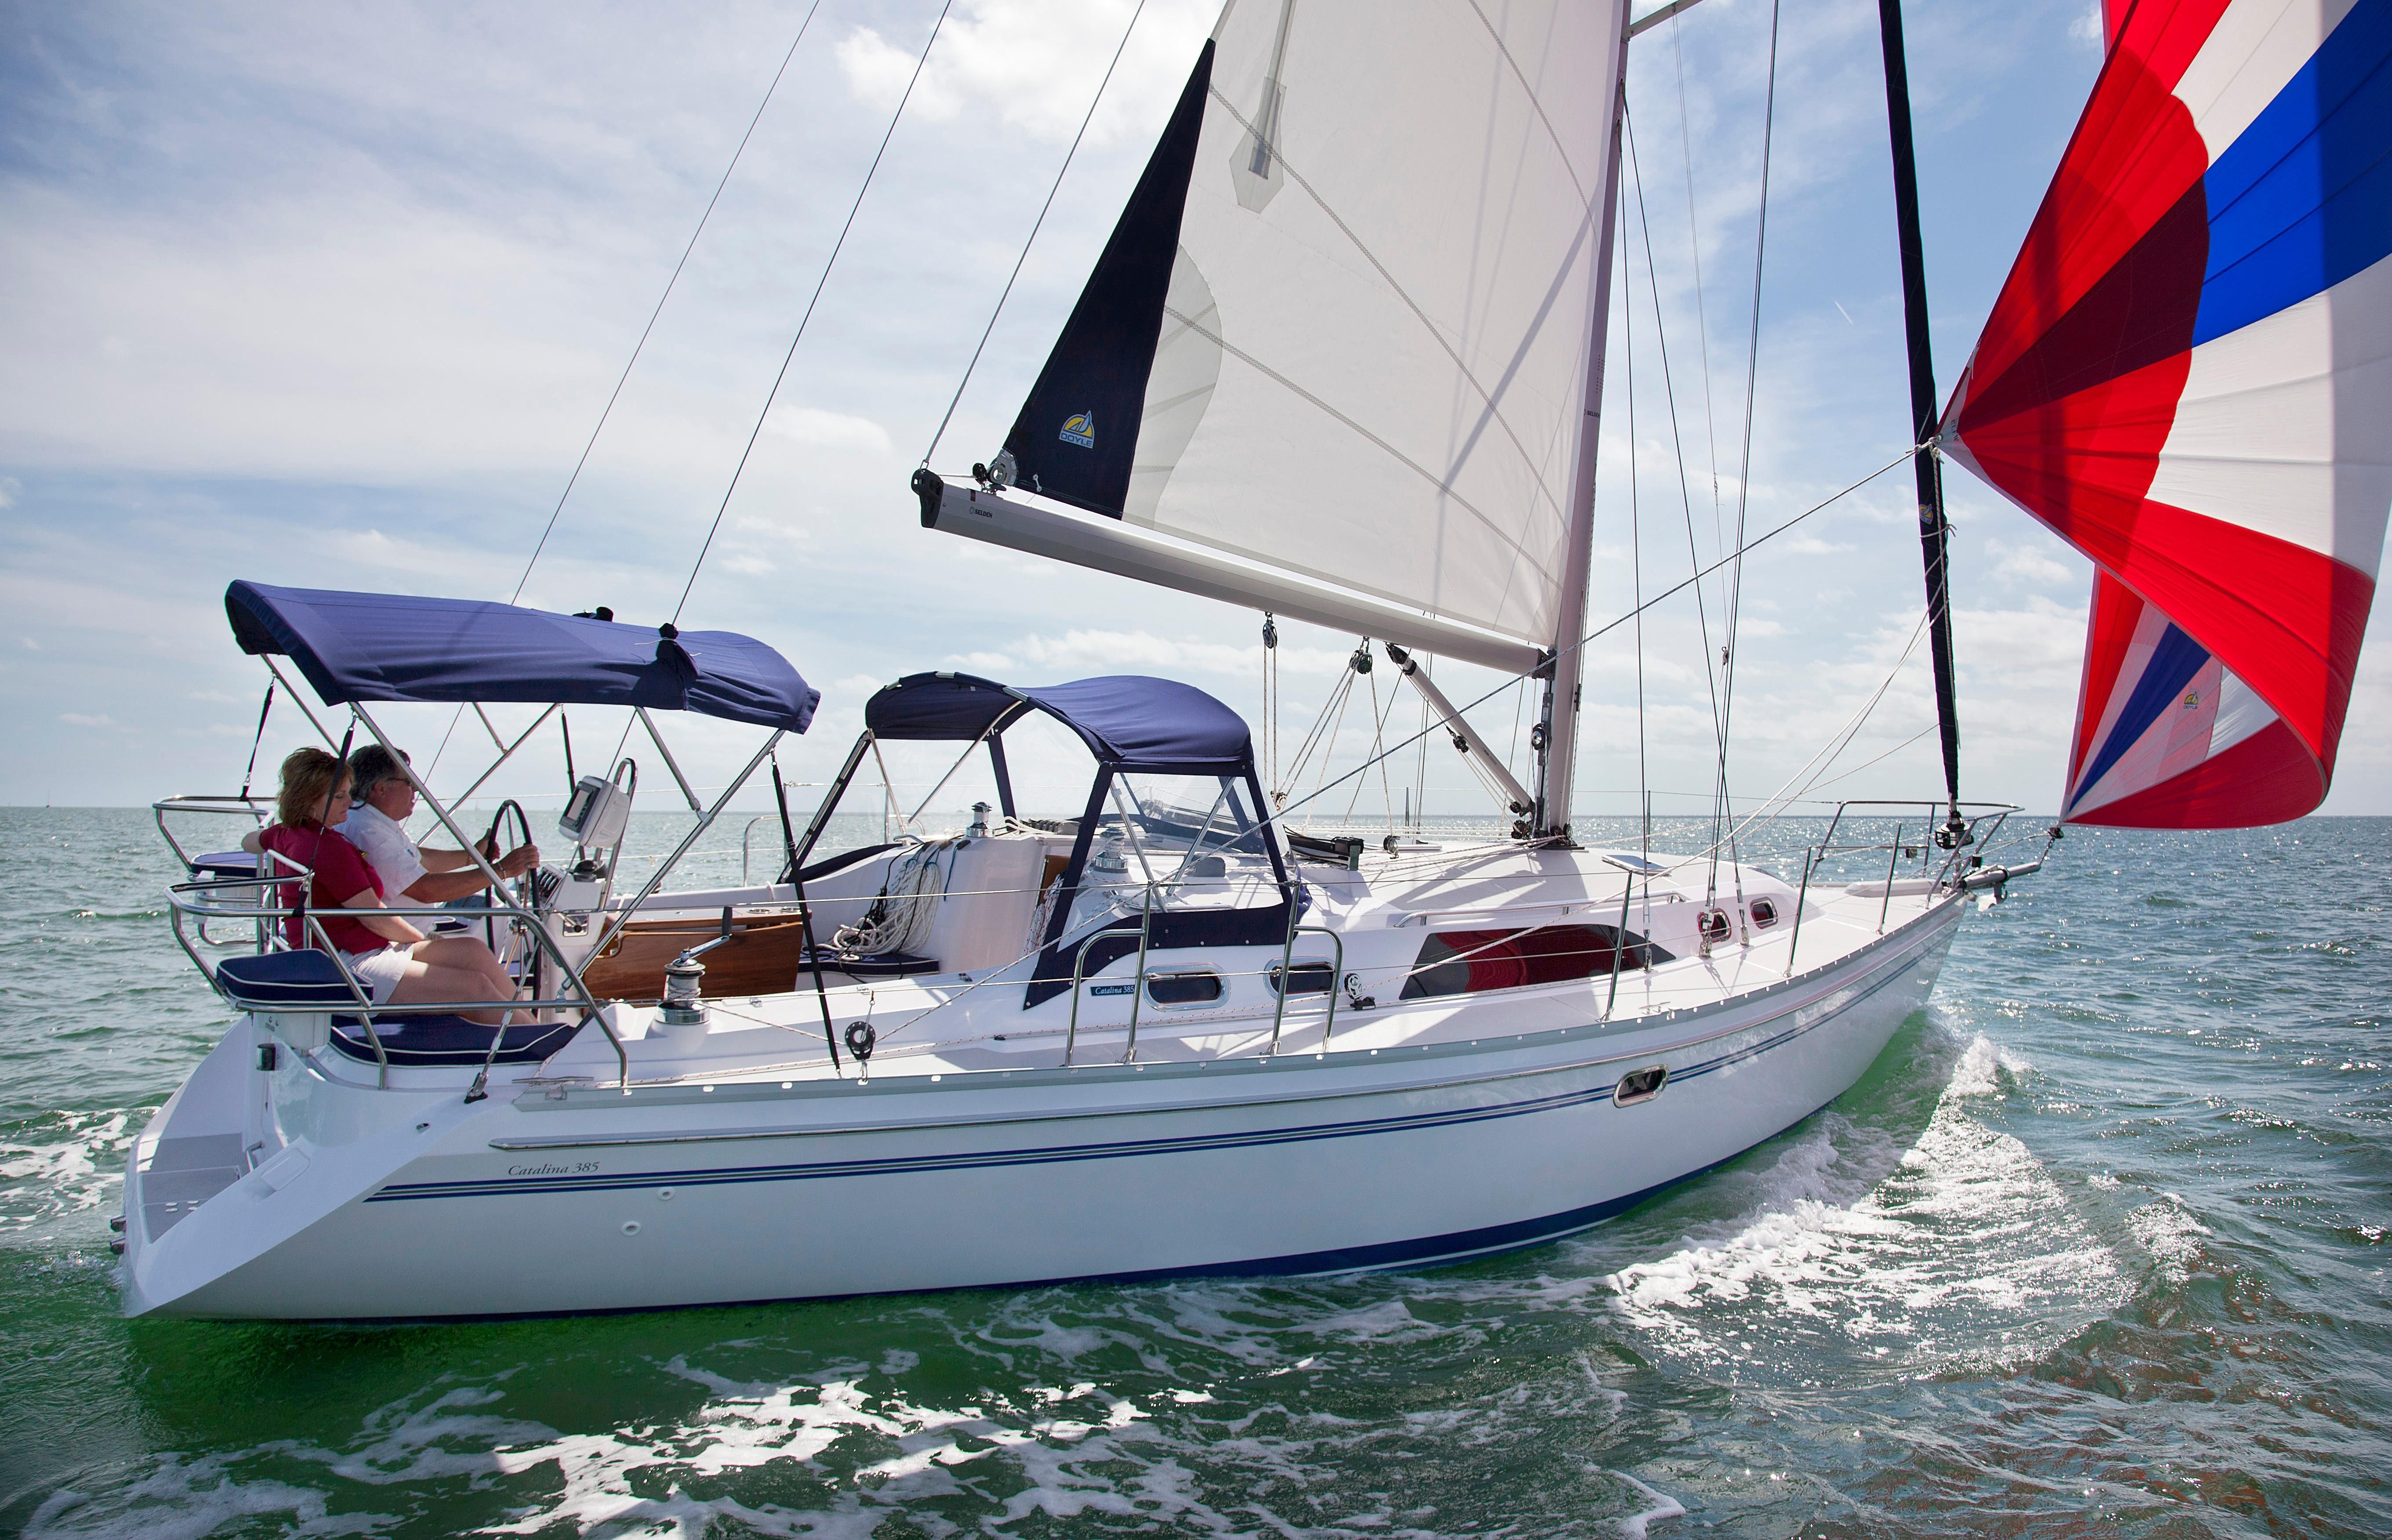 2018 Catalina 385 Sail Boat For Sale - www.yachtworld.com